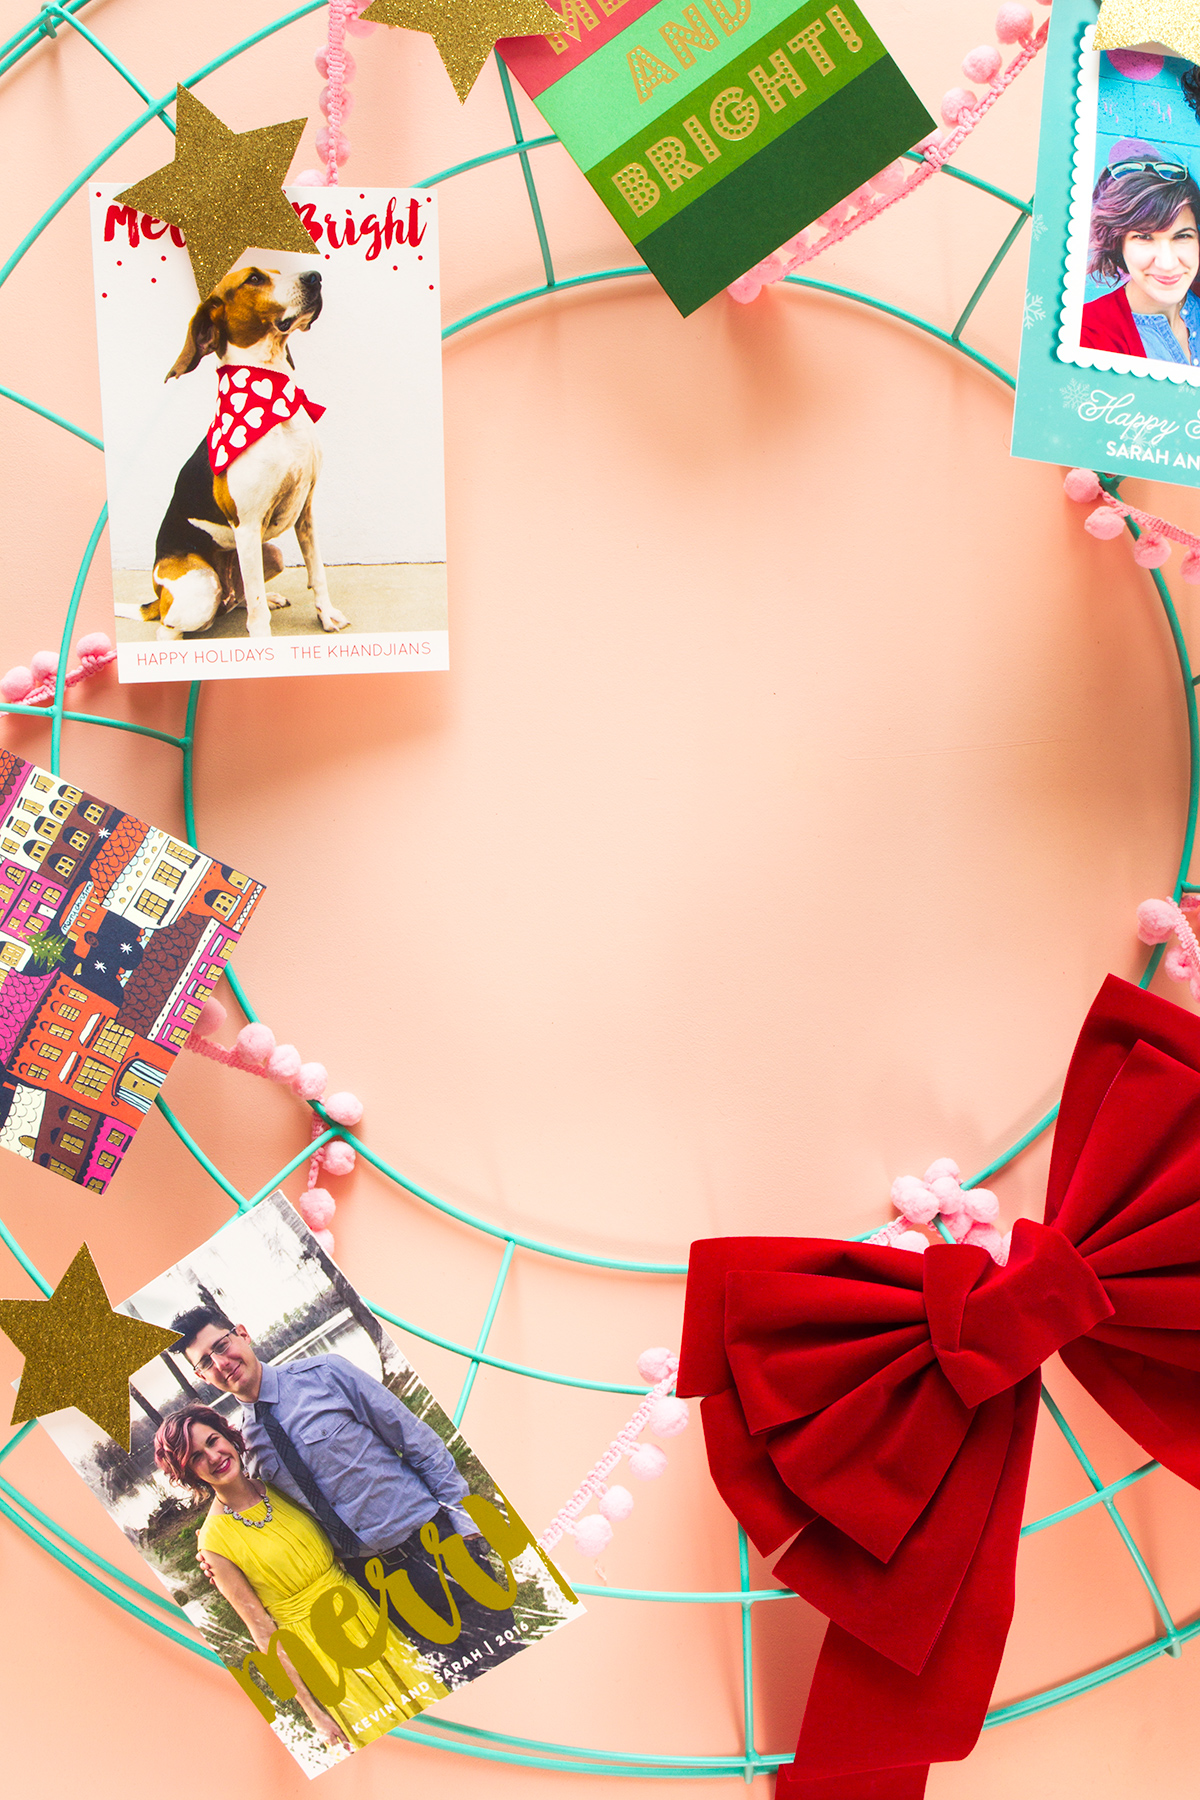 Designing and printing your own holiday photo cards is easier than you think when you use Adobe Photoshop Elements 15.